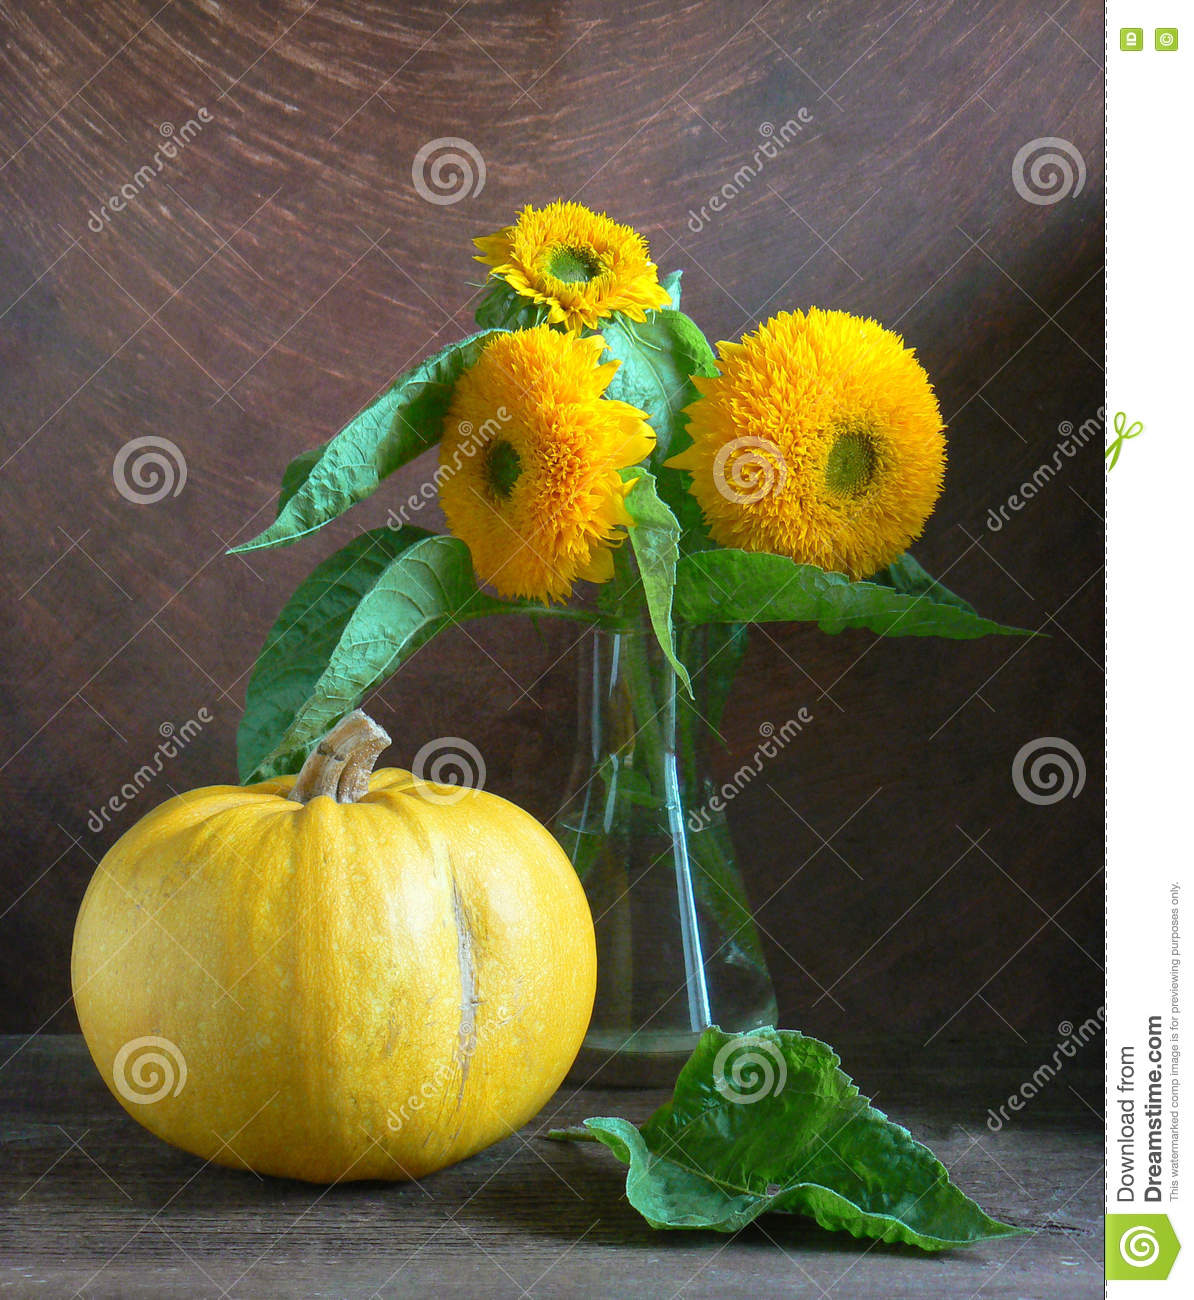 Sunflowers with pumpkin